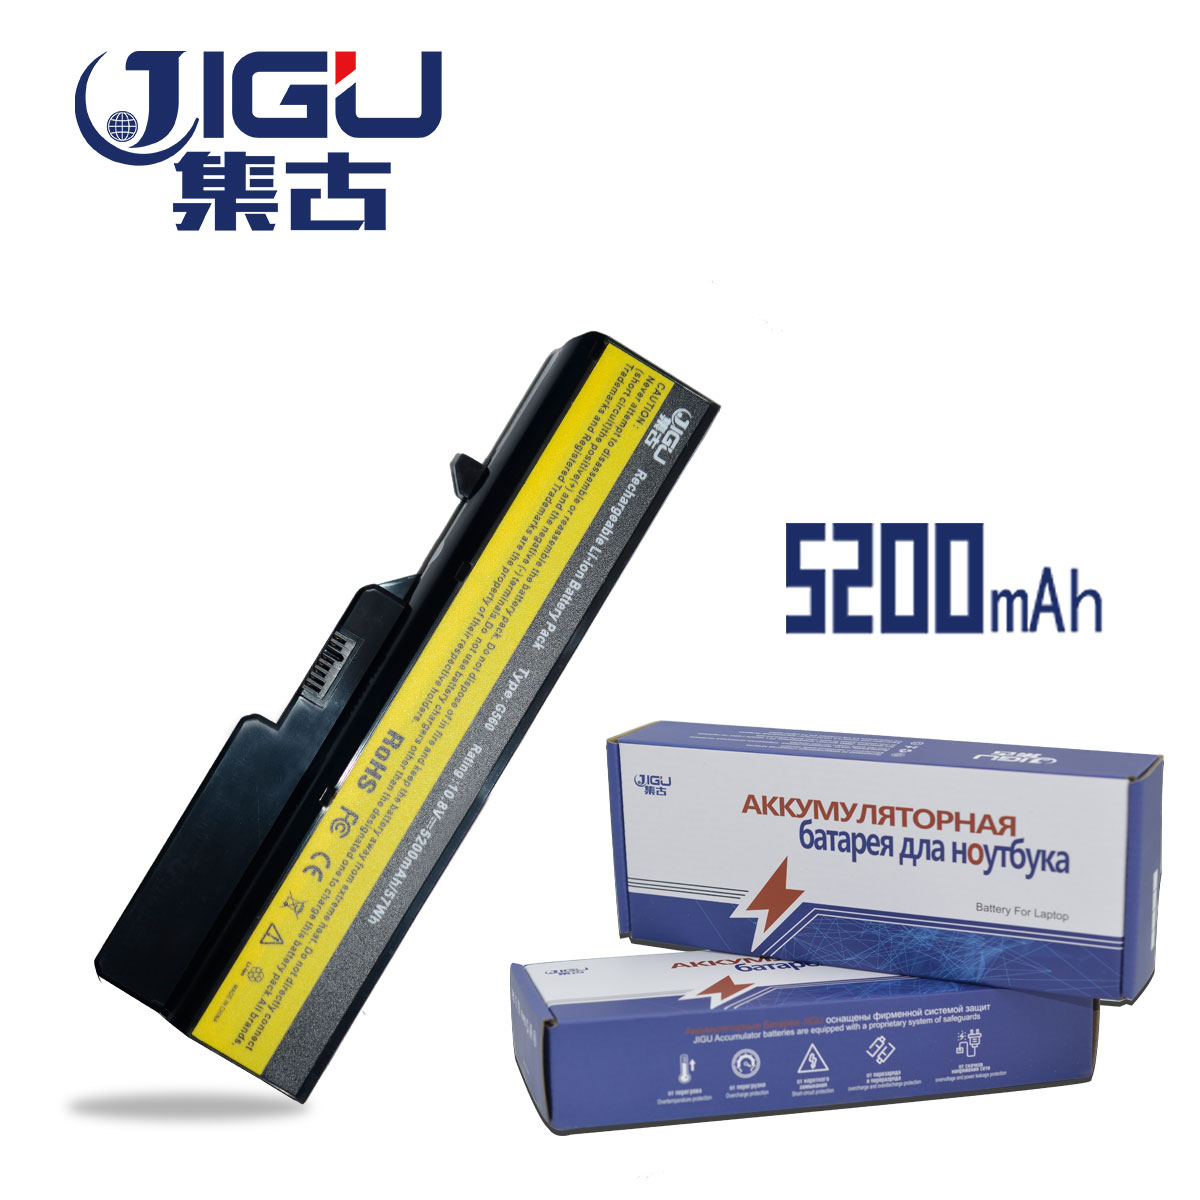 JIGU New Laptop Battery L09C6Y02 L09M6Y02 L09S6Y02 L10C6Y02 L10P6Y22 LO9L6Y02 For Lenovo IdeaPad G460 G560 V360 V370 V470 Z460 велосипед nirve cherry blossom 7sp 2015